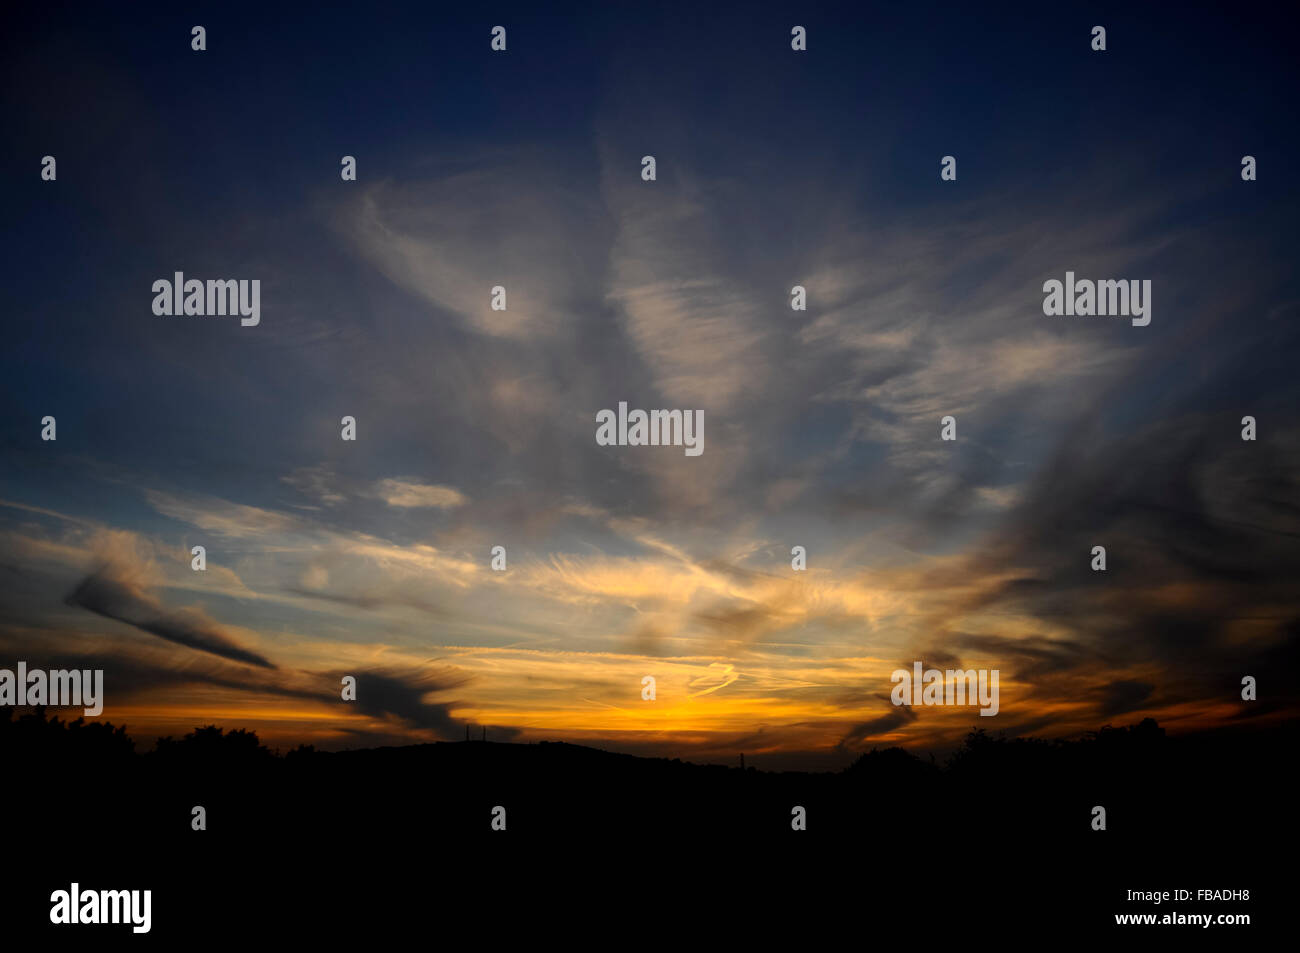 Fading light after a sunset with high wispy clouds in the sky. - Stock Image